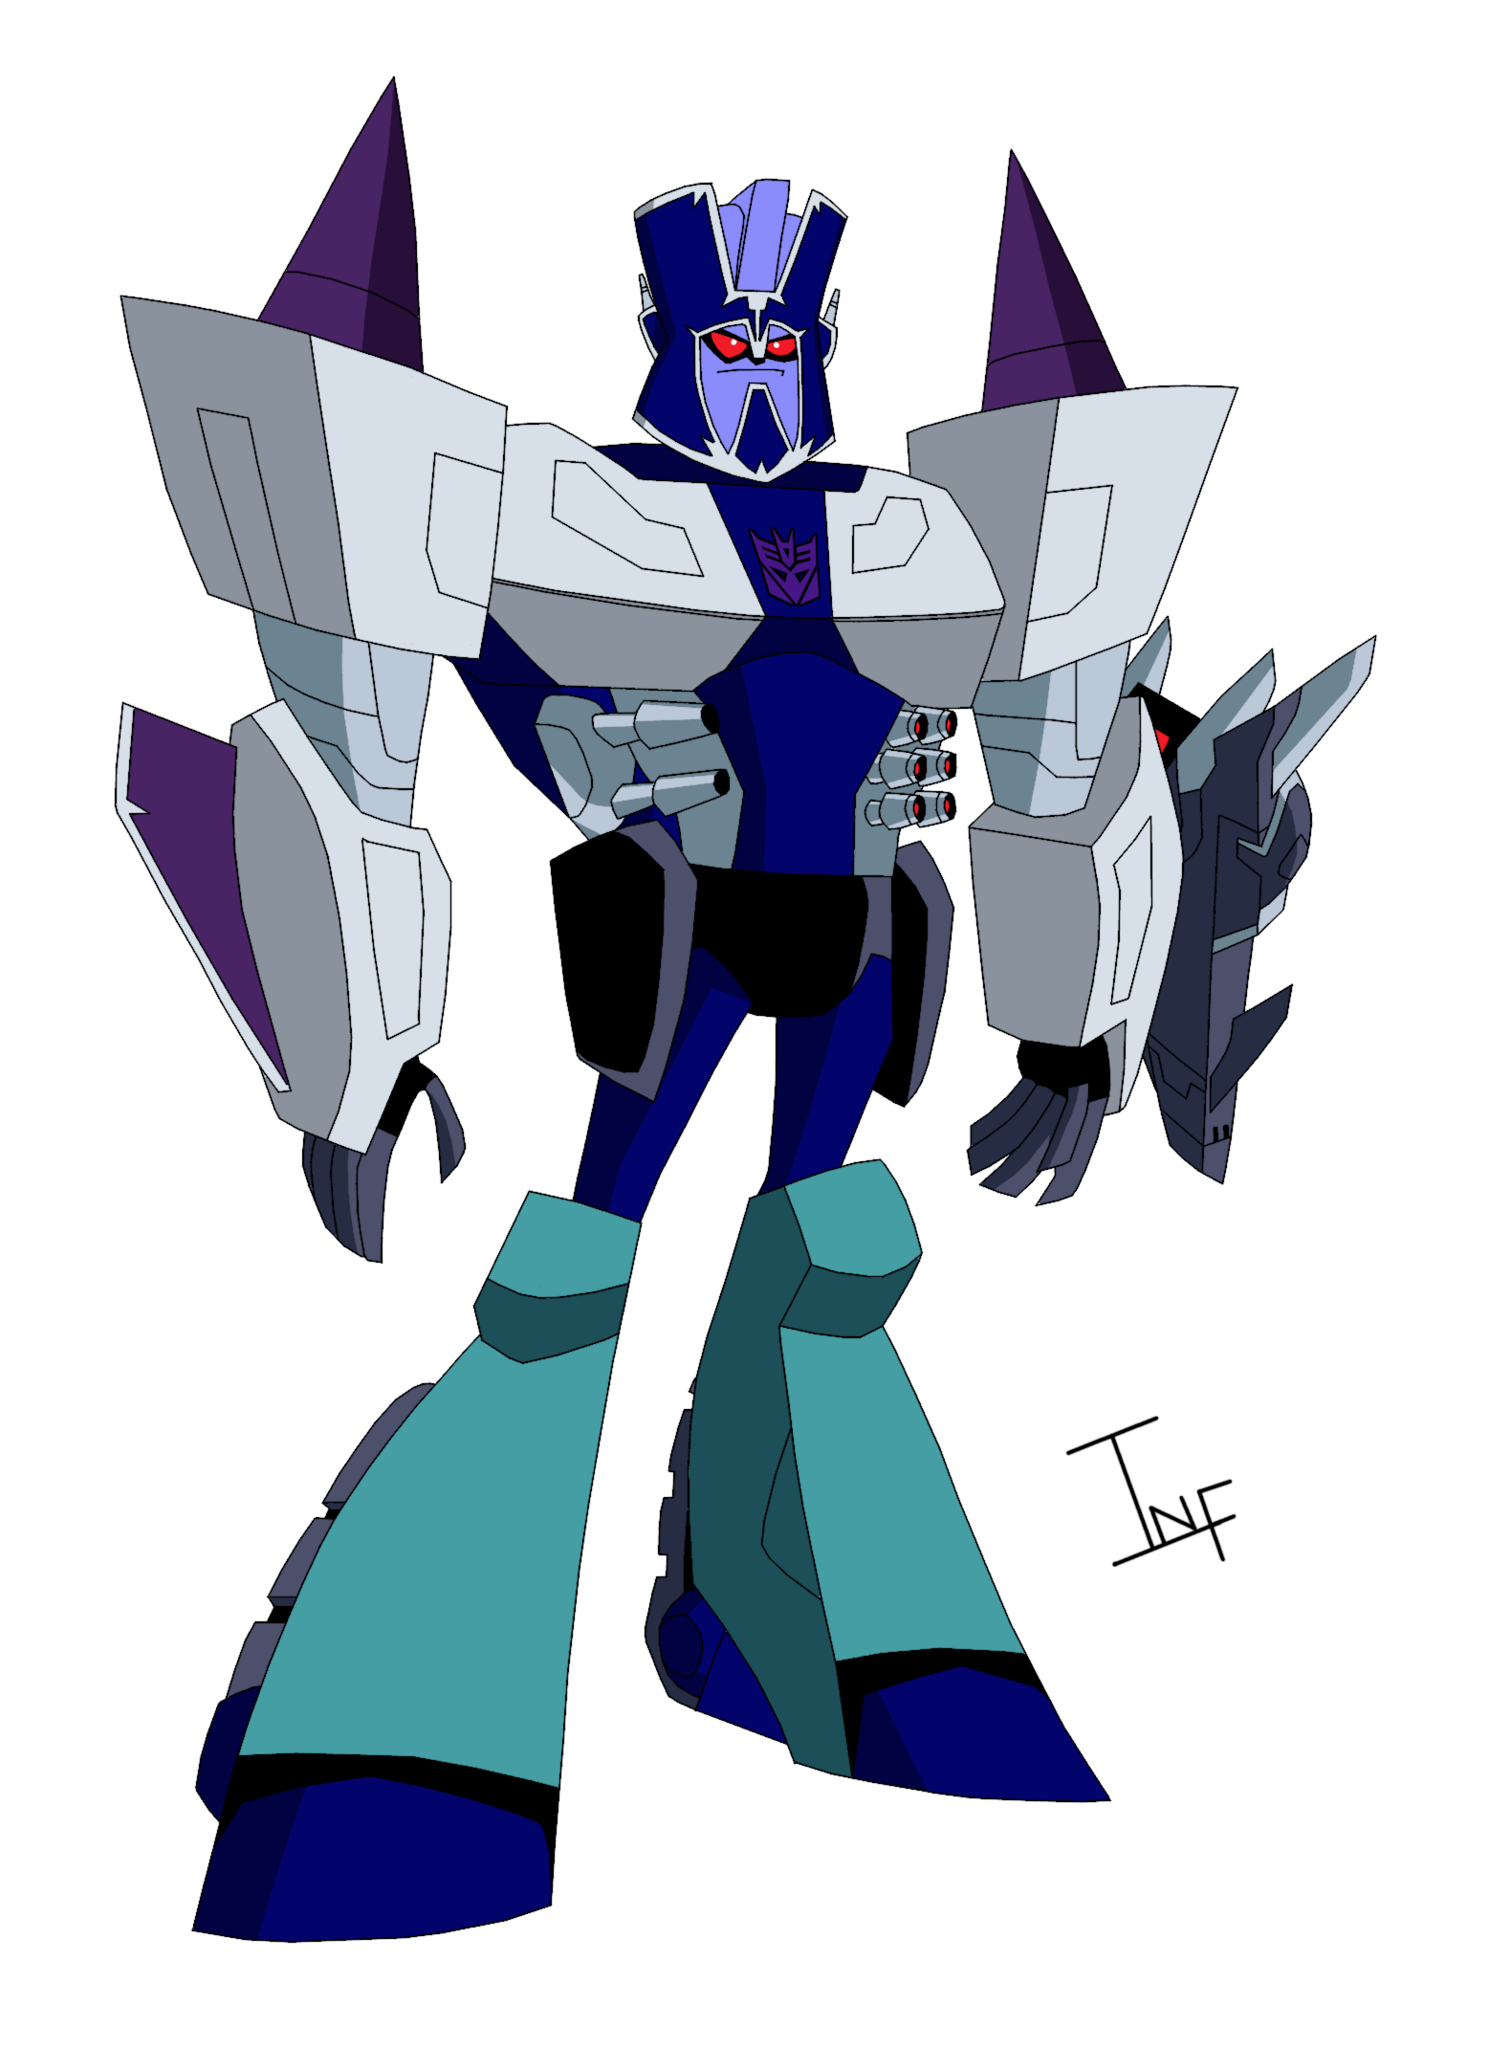 Overlord_decepticon_bg.png